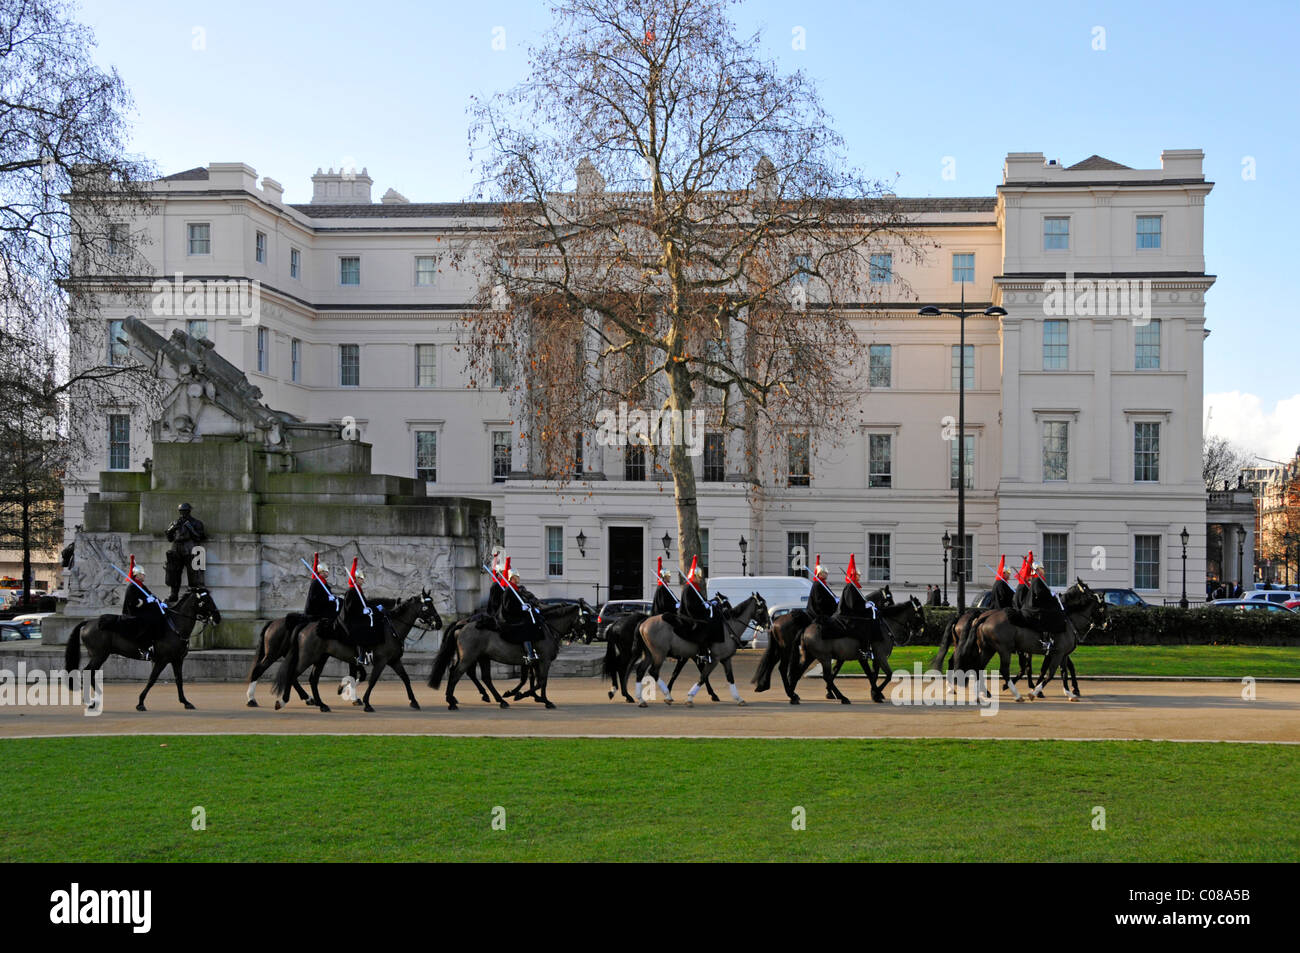 Household Cavalry horses & troopers passing Lanesborough Hotel 5 stars expensive luxury hotel on blue sky day - Stock Image